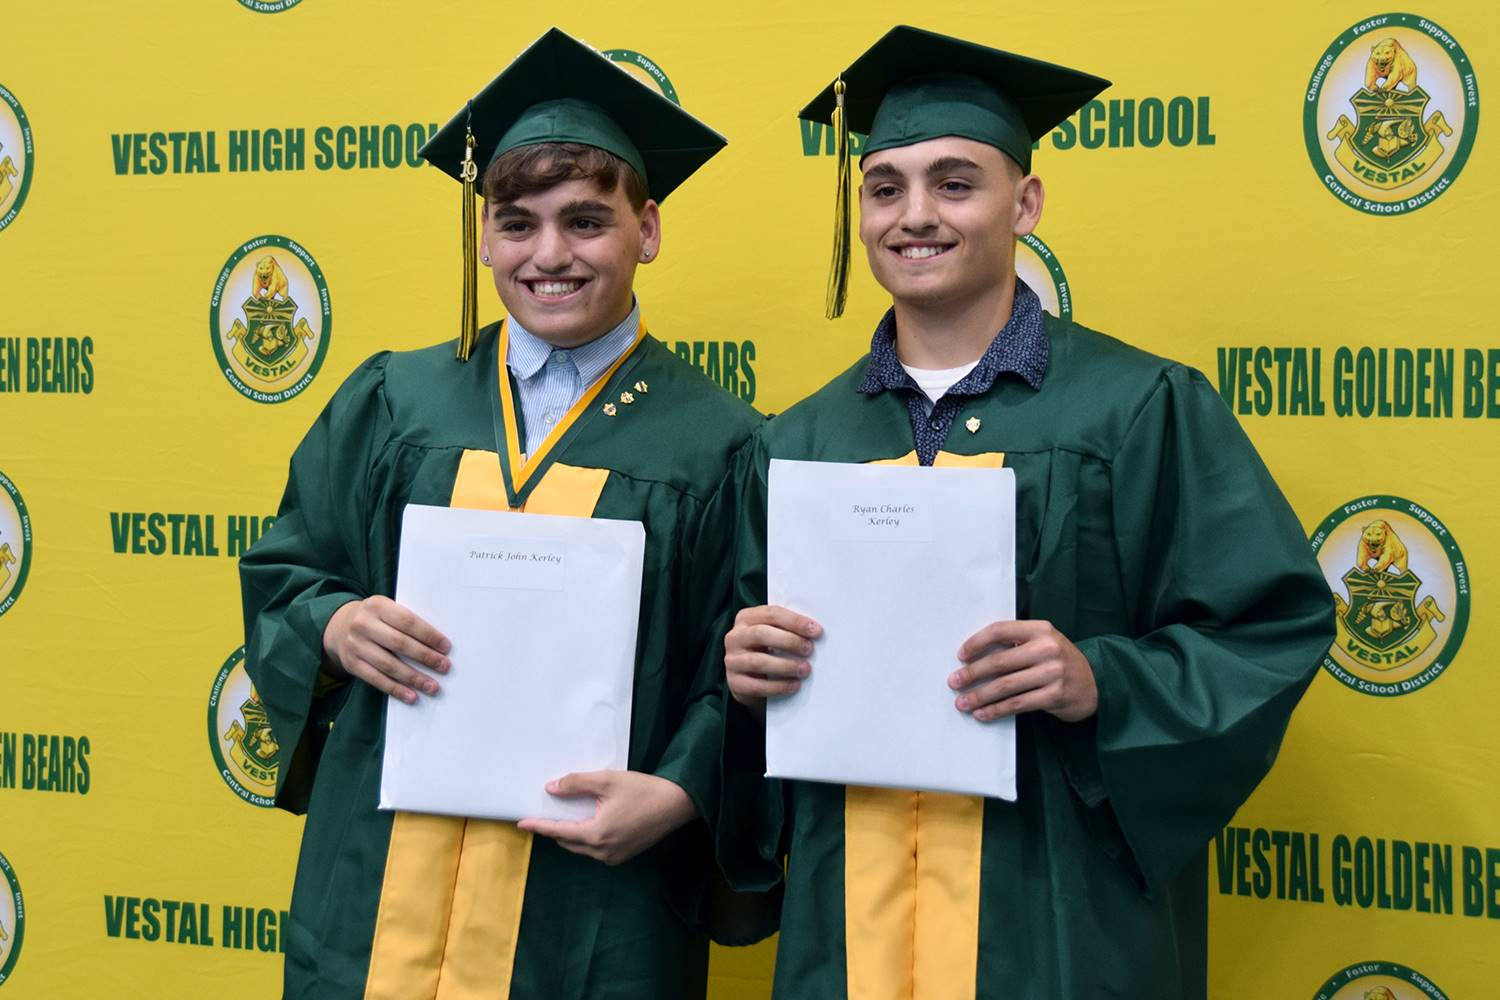 Brother Patrick and Ryan Kerley stand side by side with their diplomas in front of the yellow and gr